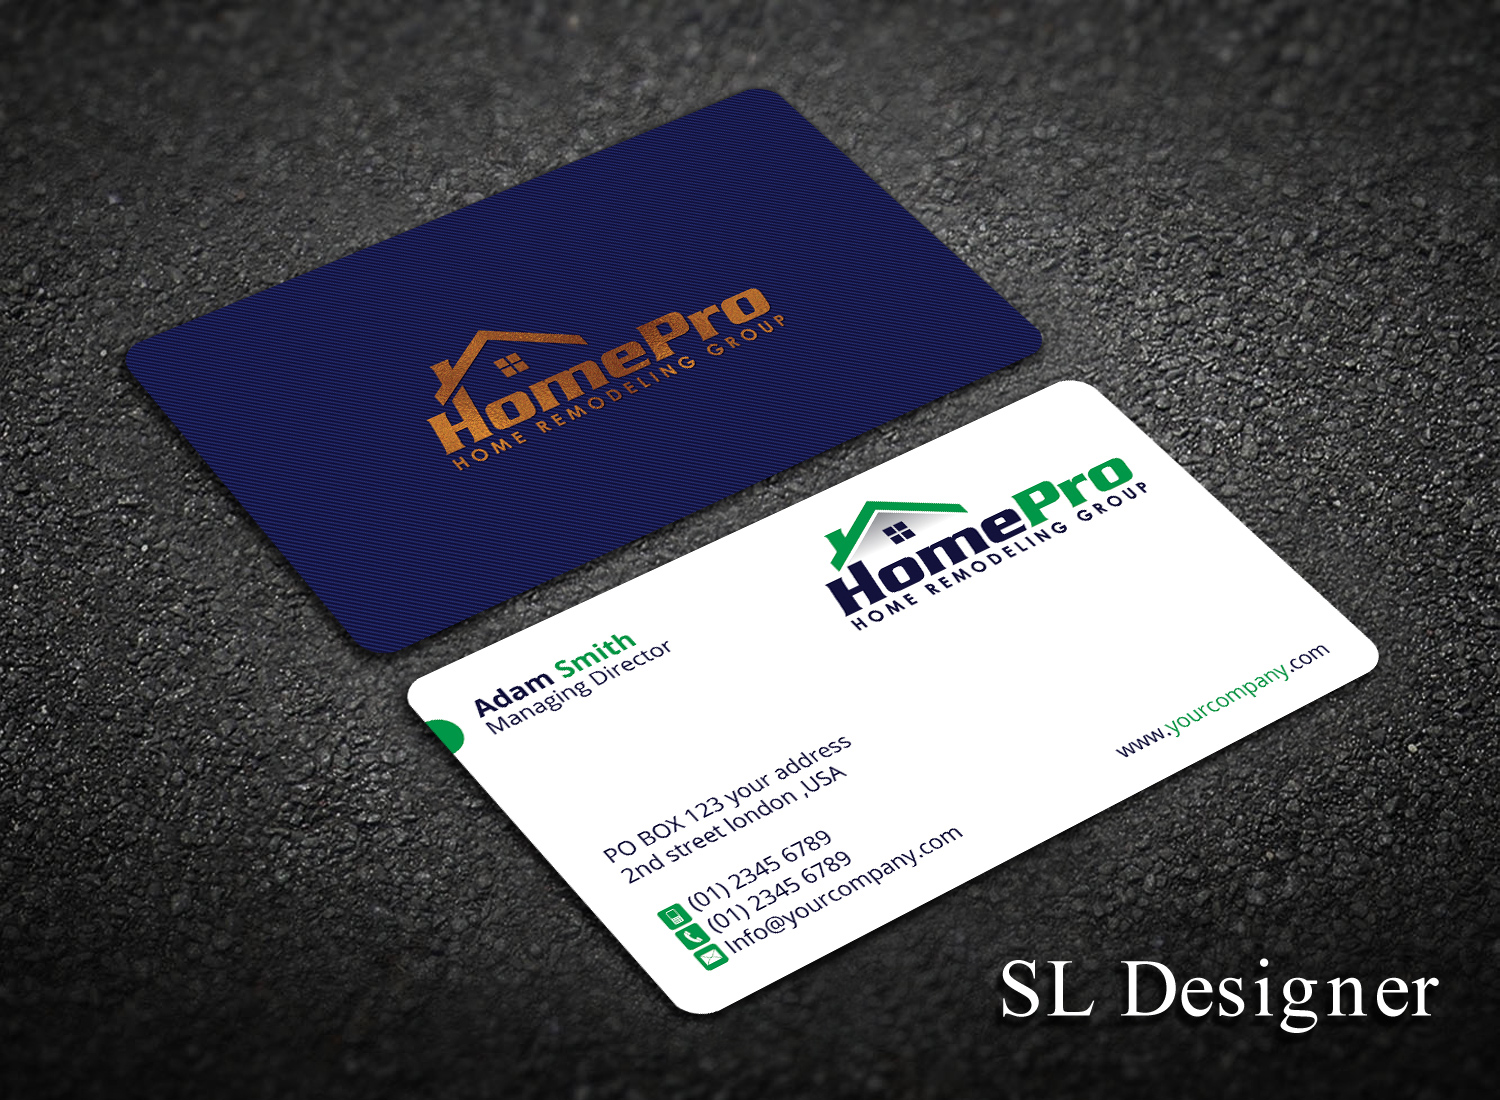 Upmarket elegant home improvement business card design for a business card design by sl designer for this project design 14096550 reheart Image collections